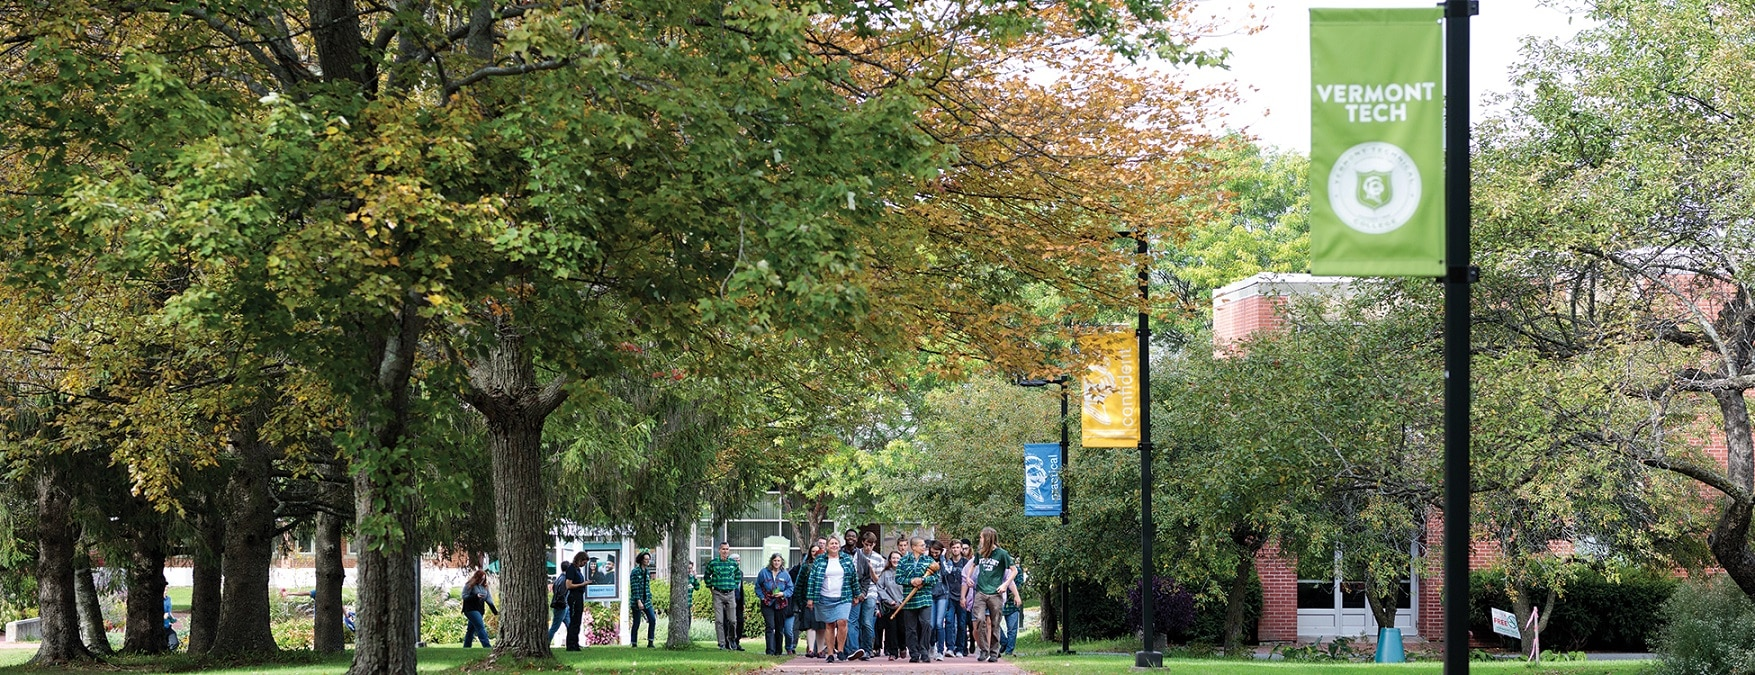 A view of the Randolph Center campus as students and faculty march toward Morey Green